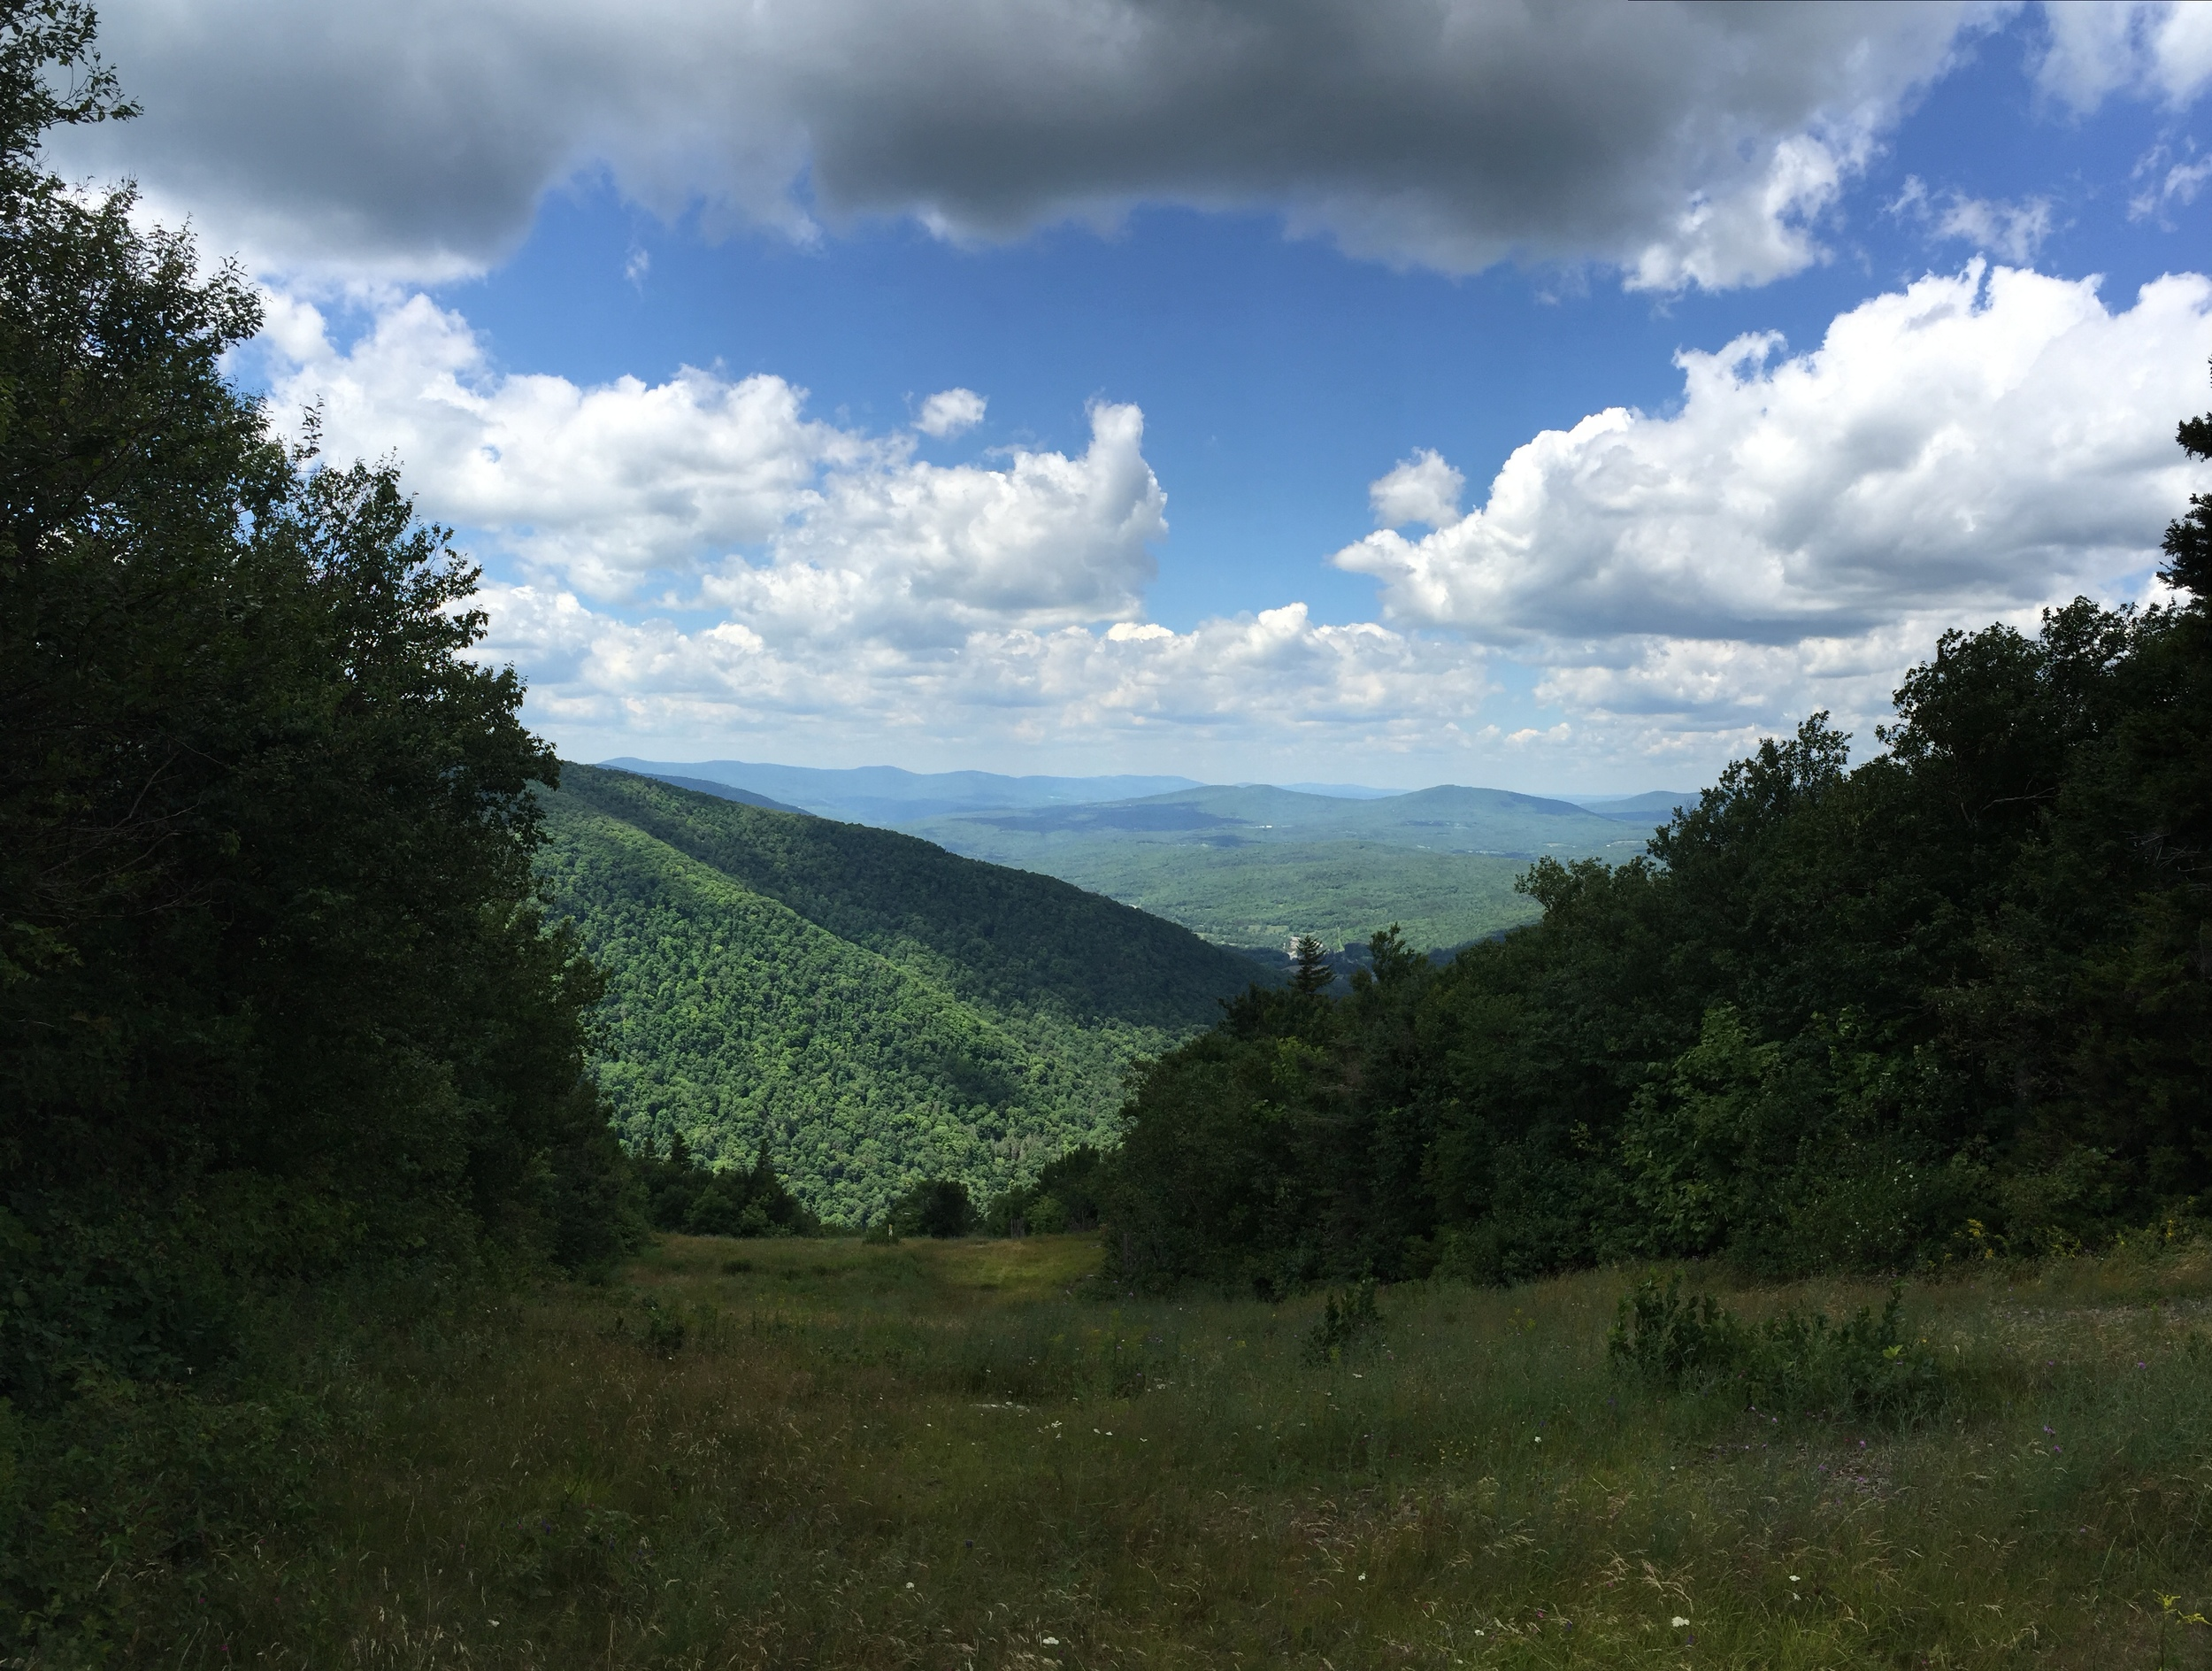 A view from the Hunter Mountain in Catskills